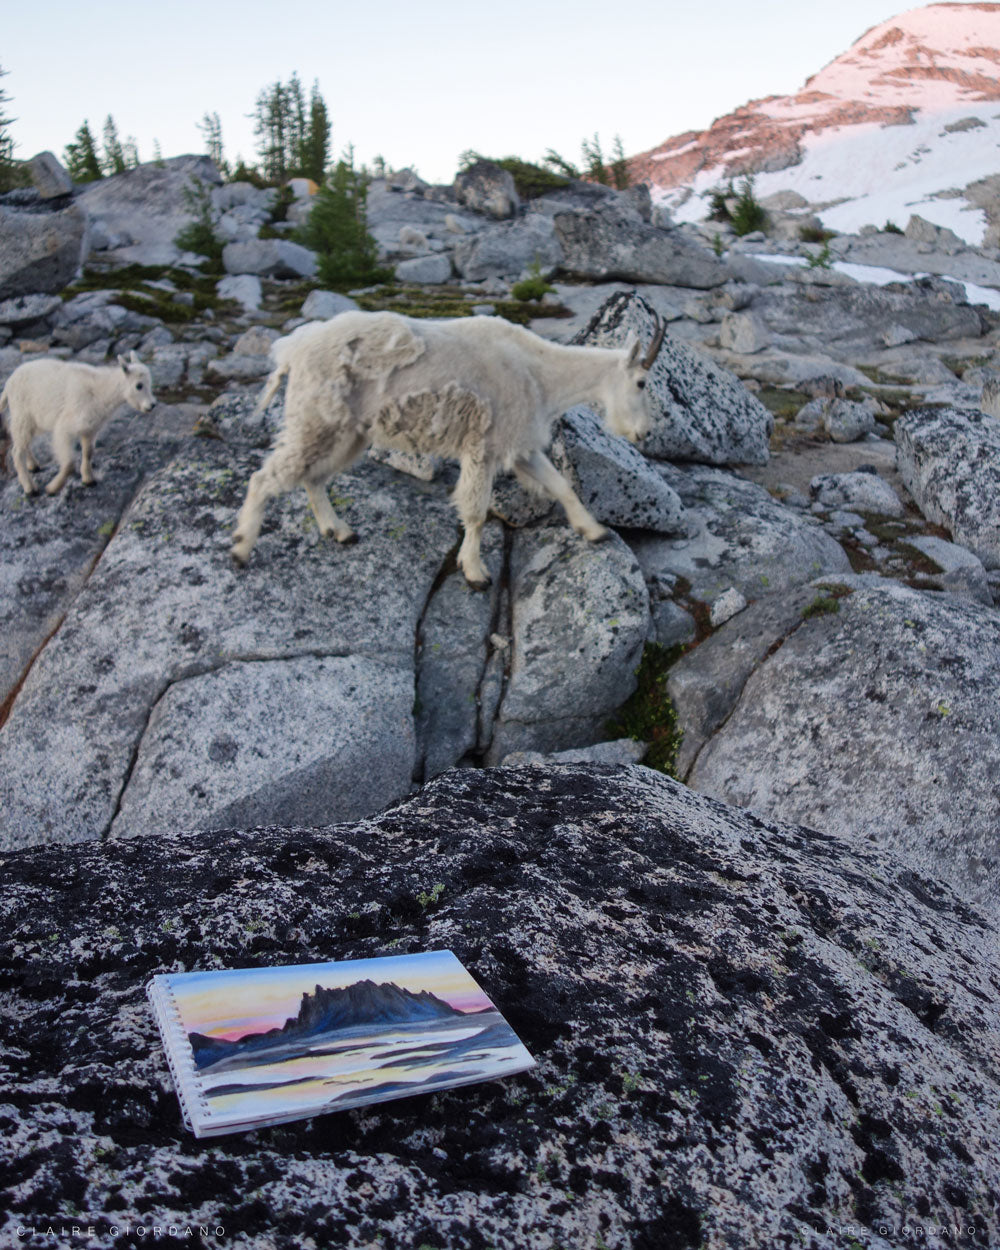 The two mountain goats that watched me paint for a while.